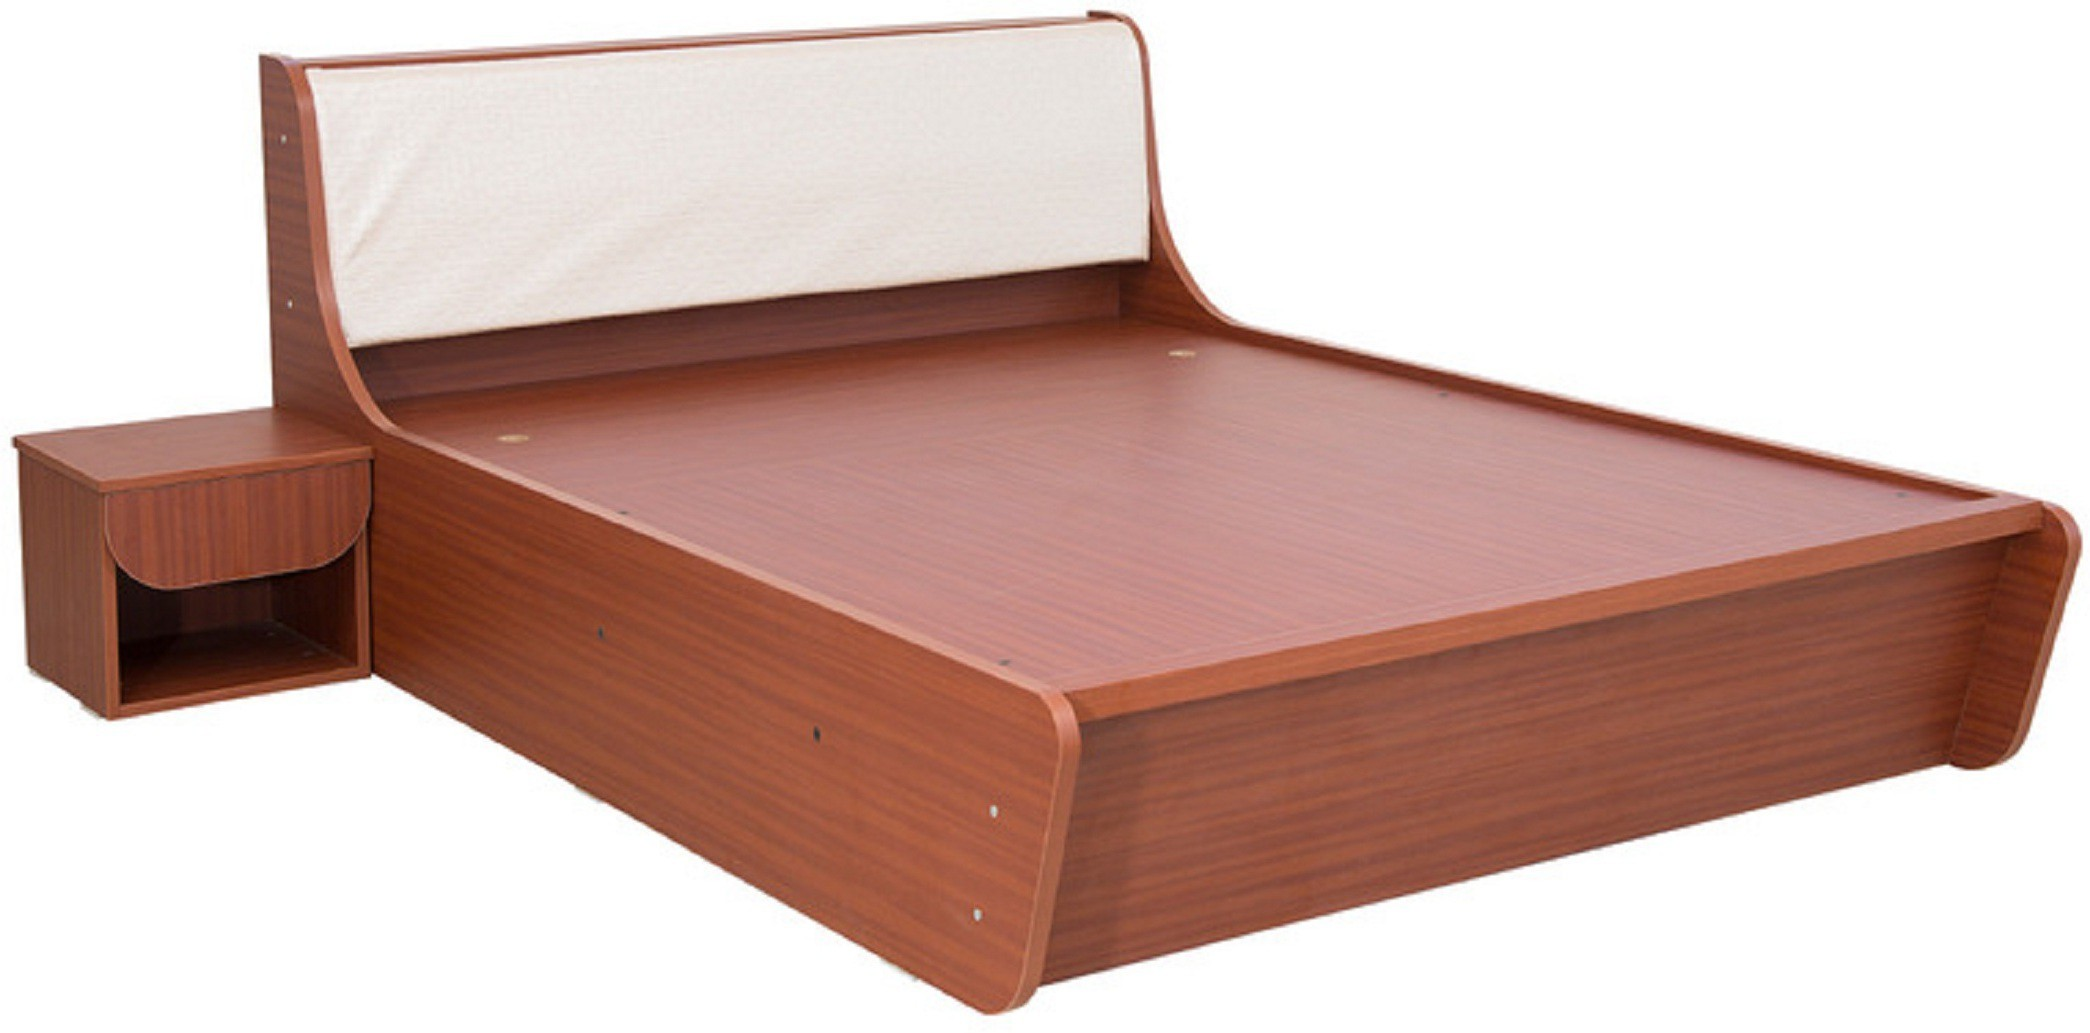 View RAWAT Engineered Wood Queen Bed With Storage(Finish Color -  Sapheli) Furniture (RAWAT)